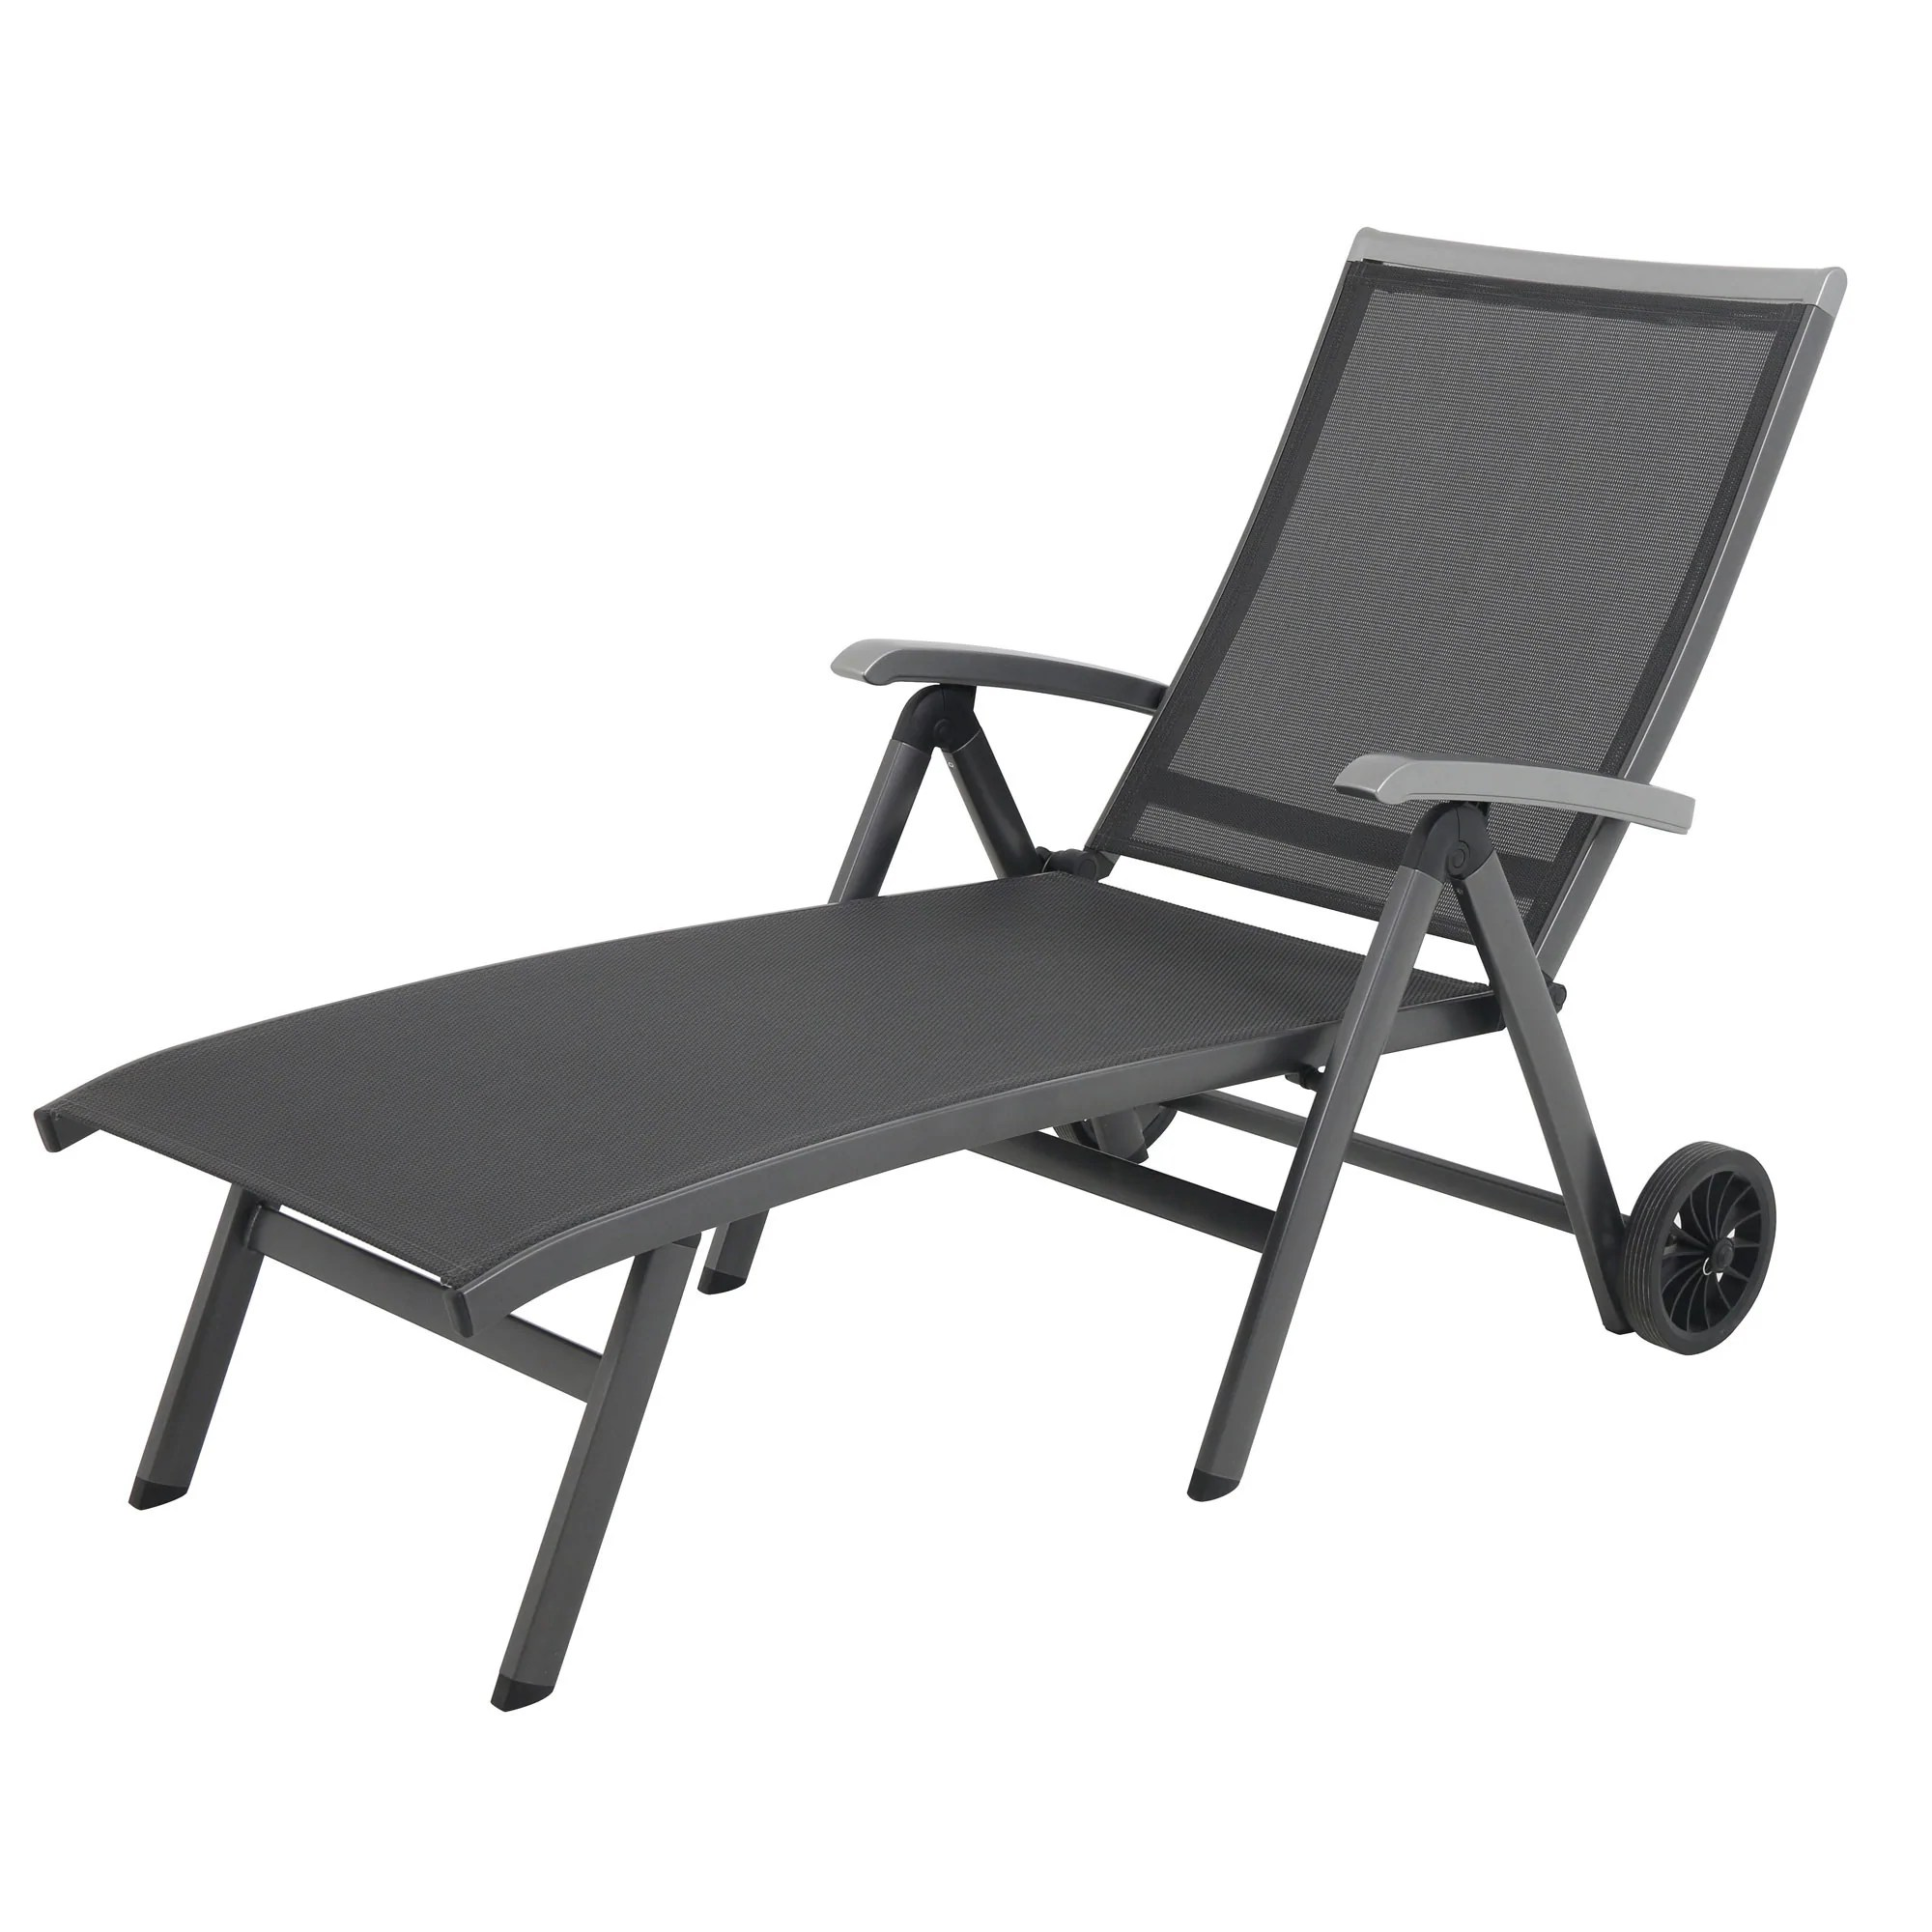 metal lounge chair with wheels portable rocking royal garden ludwig aluminum folding chaise